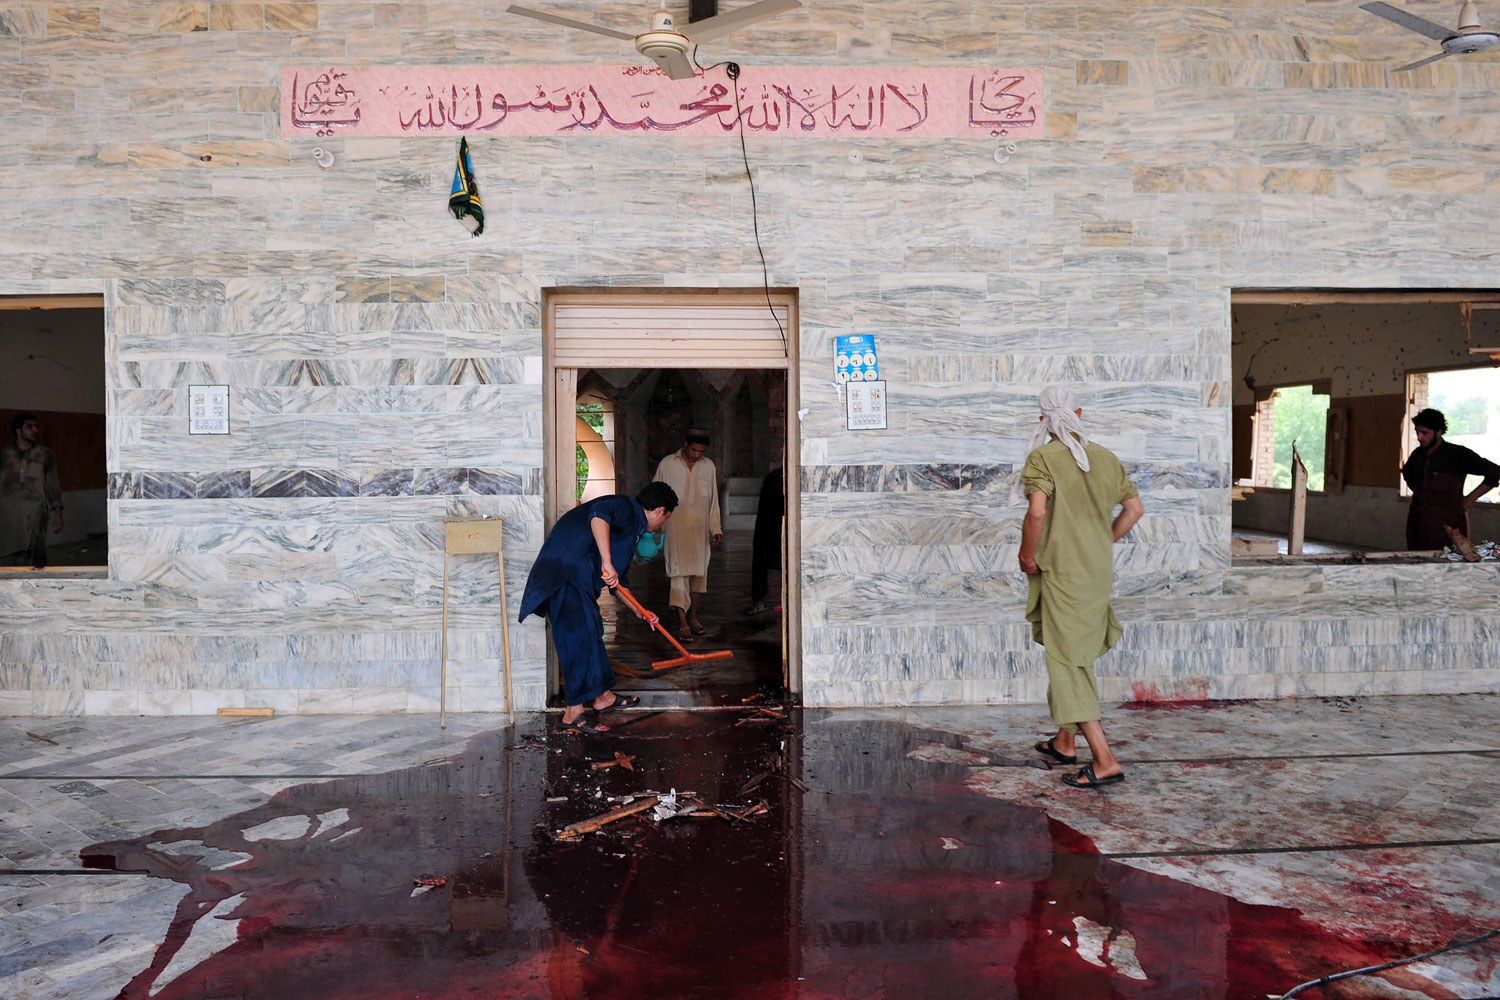 August 19, 2011. Local residents clean a mosque after a suicide bomb attack in the town of Jamrud, 25 kilometres (16 miles) from Peshawar. A suicide bomber hit a Pakistani mosque during Friday prayers, killing at least 43 people and wounding more than 100 others in the tribal district of Khyber, officials said. The Khyber bomb exploded after more than 500 people had packed into the mosque in the town of Jamrud, 25 kilometres (16 miles) from Peshawar, the main city in the northwest where most of the violence in Pakistan is concentrated.